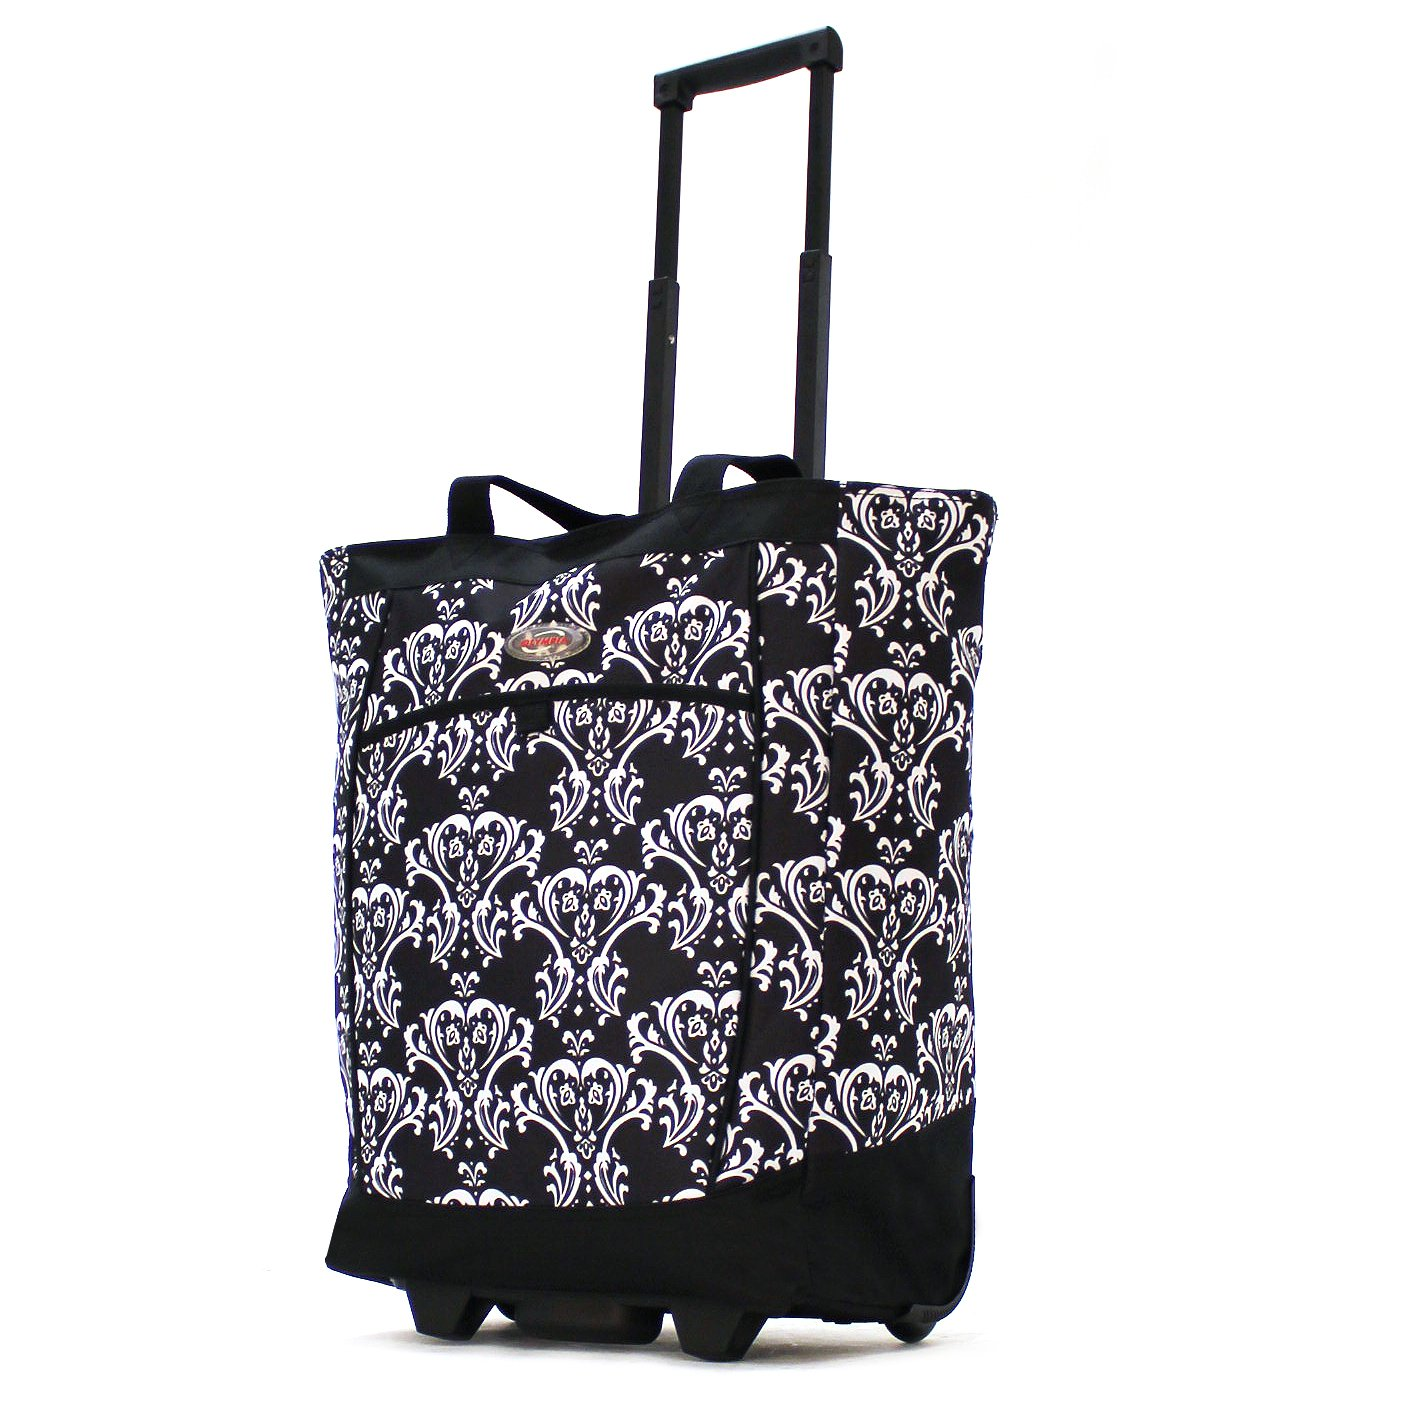 Olympia Fashion Rolling Shopper Tote - Damask Black, 2300 cu. in. by Olympia